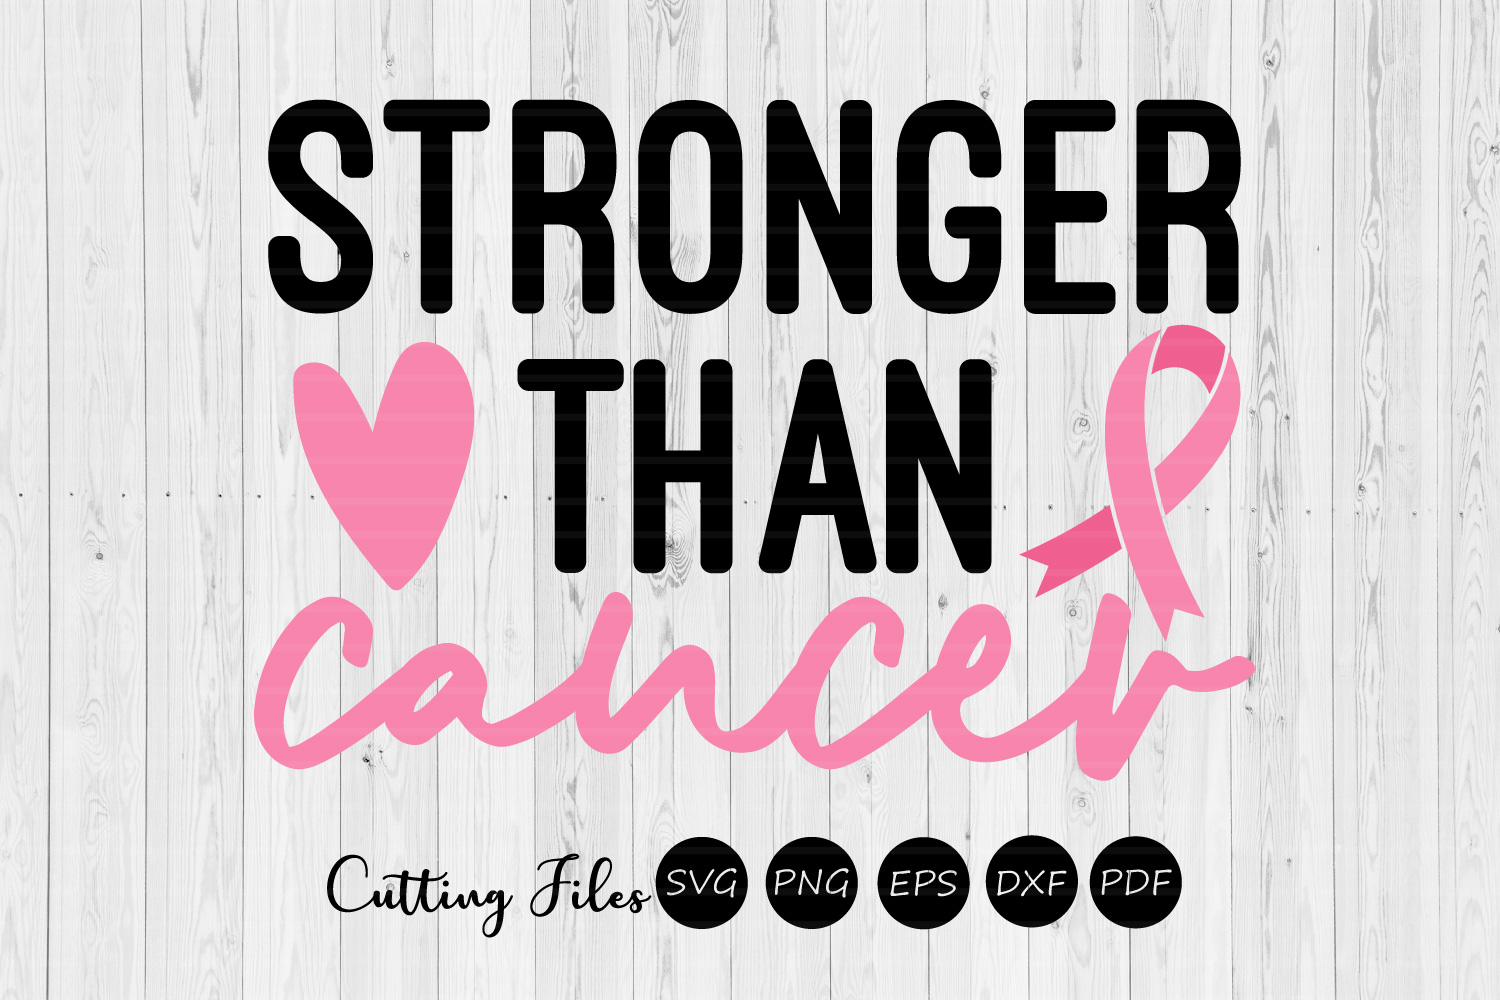 Download Free Stronger Than Cancer Svg Graphic By Hd Art Workshop Creative Fabrica for Cricut Explore, Silhouette and other cutting machines.